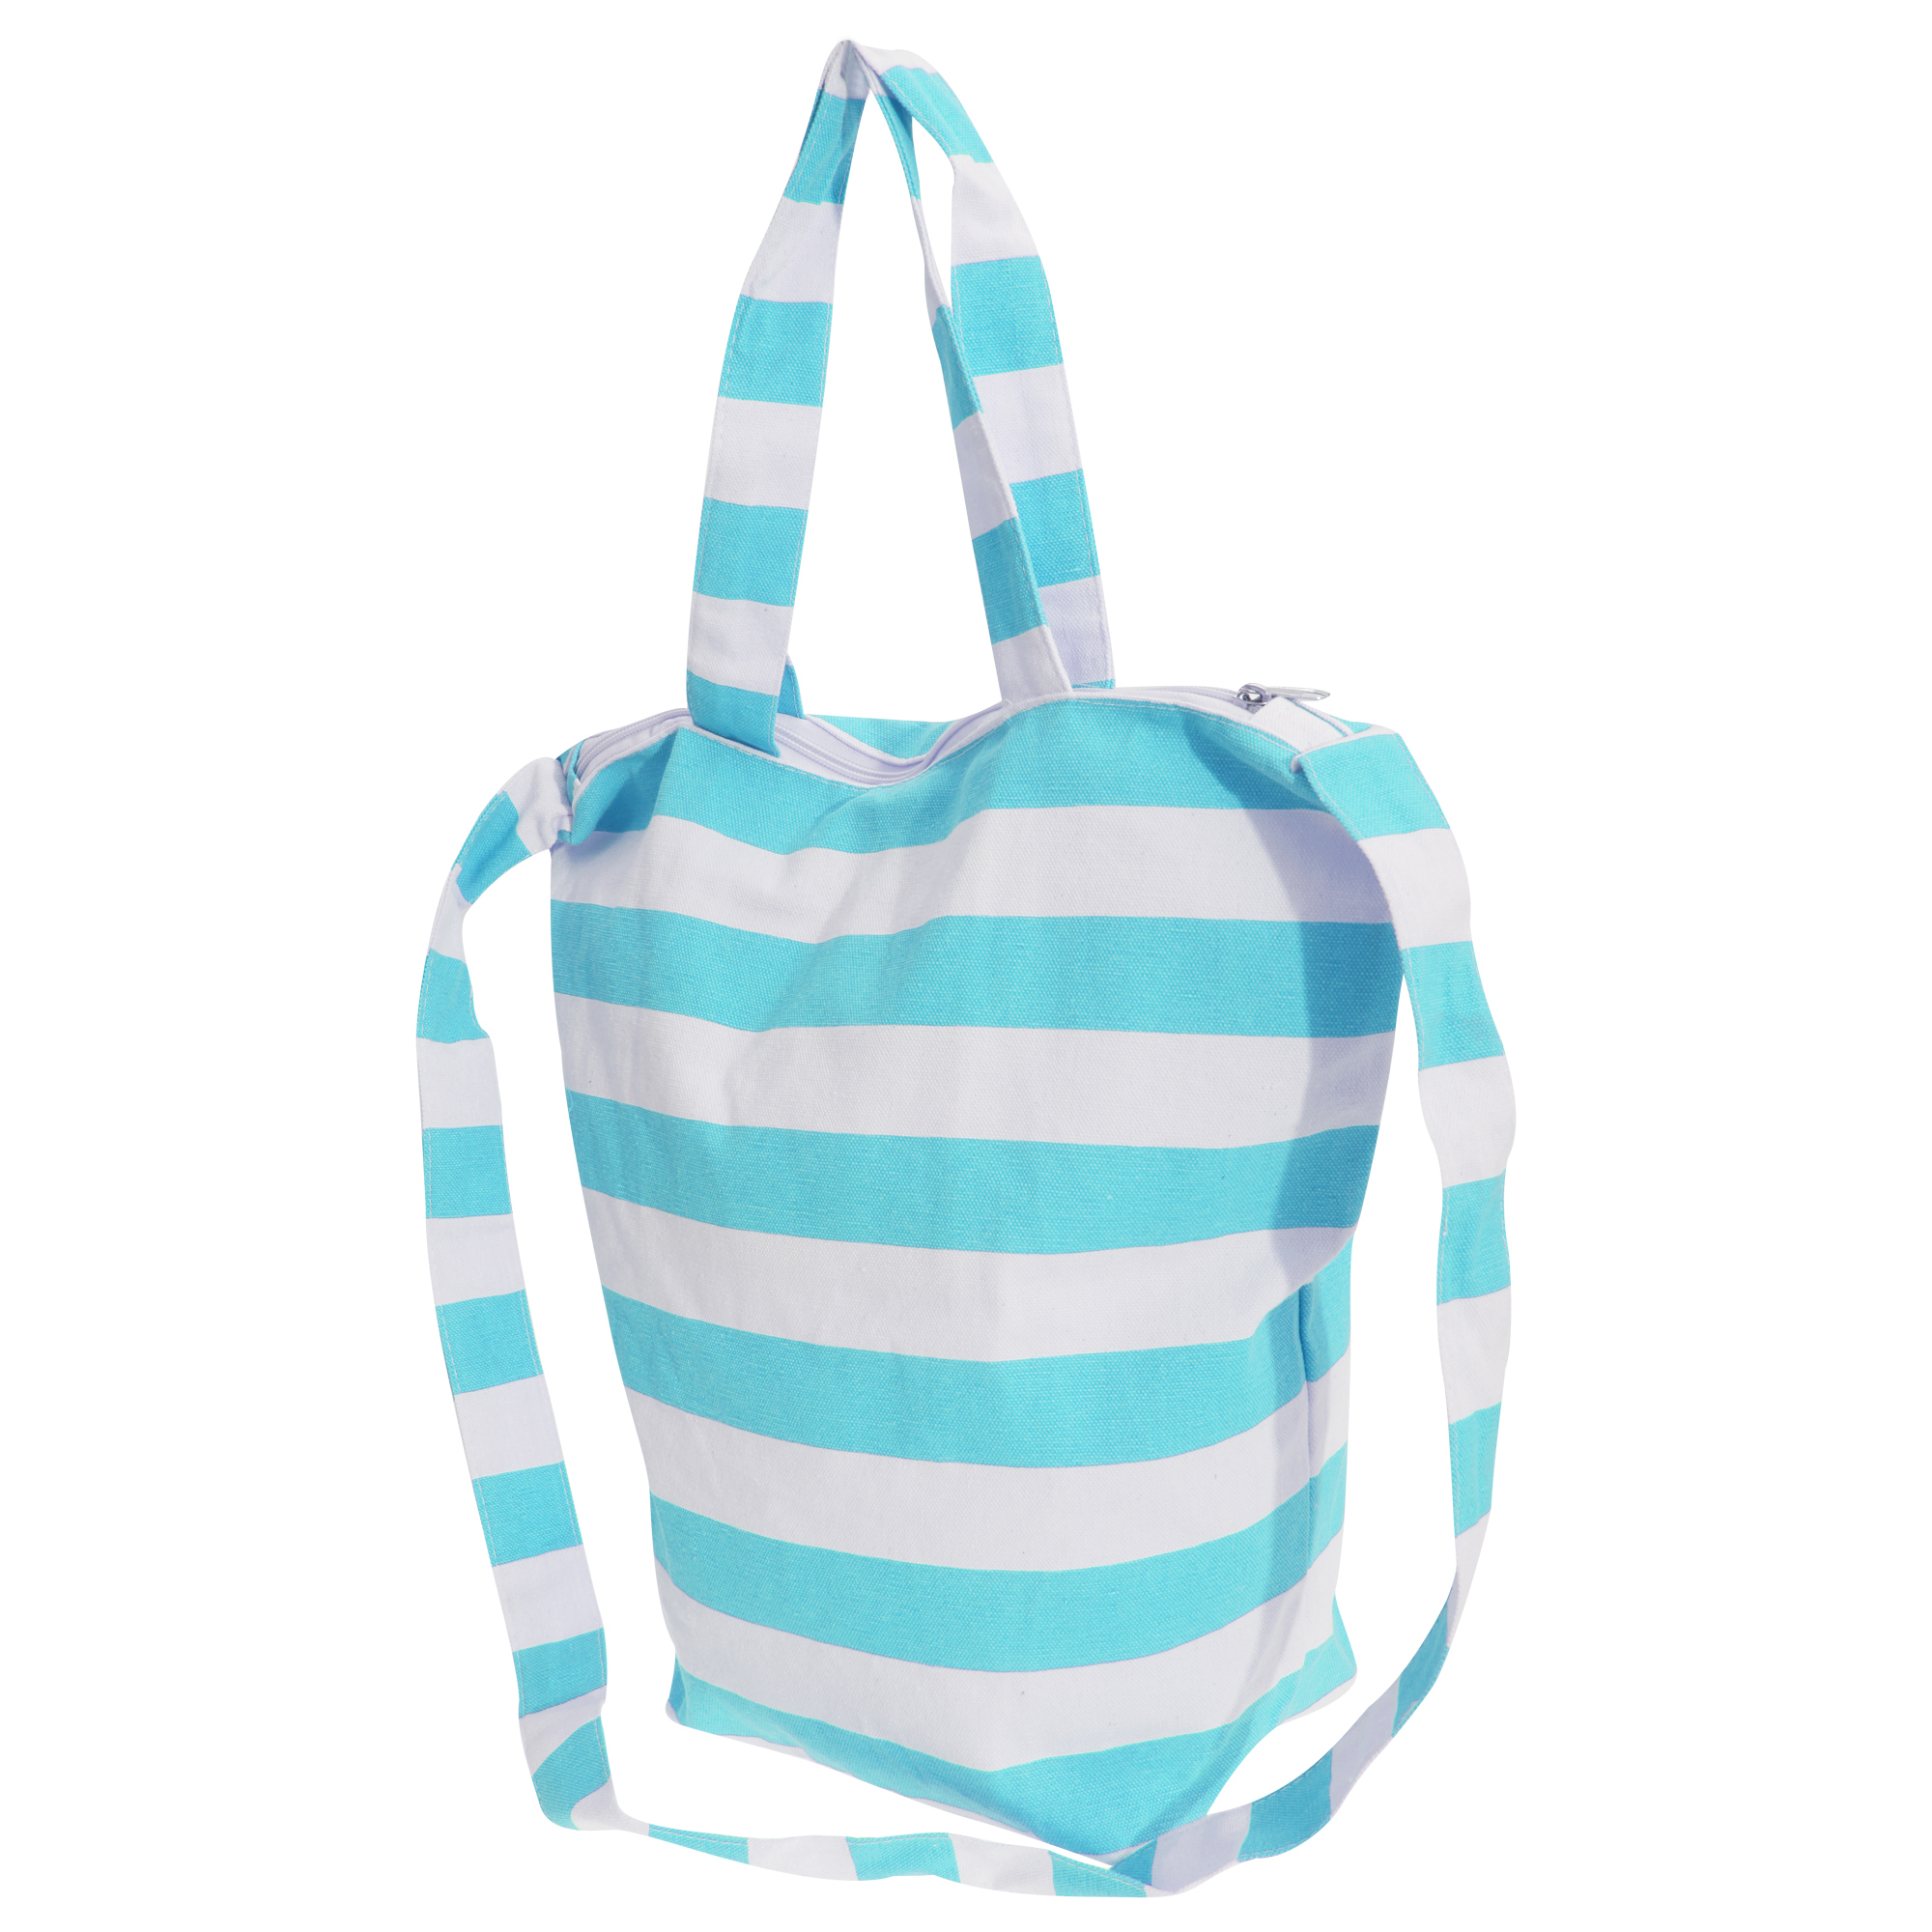 FLOSO Womens/Ladies Striped Summer Handbag With Shoulder Strap (One Size) (White/Mint)